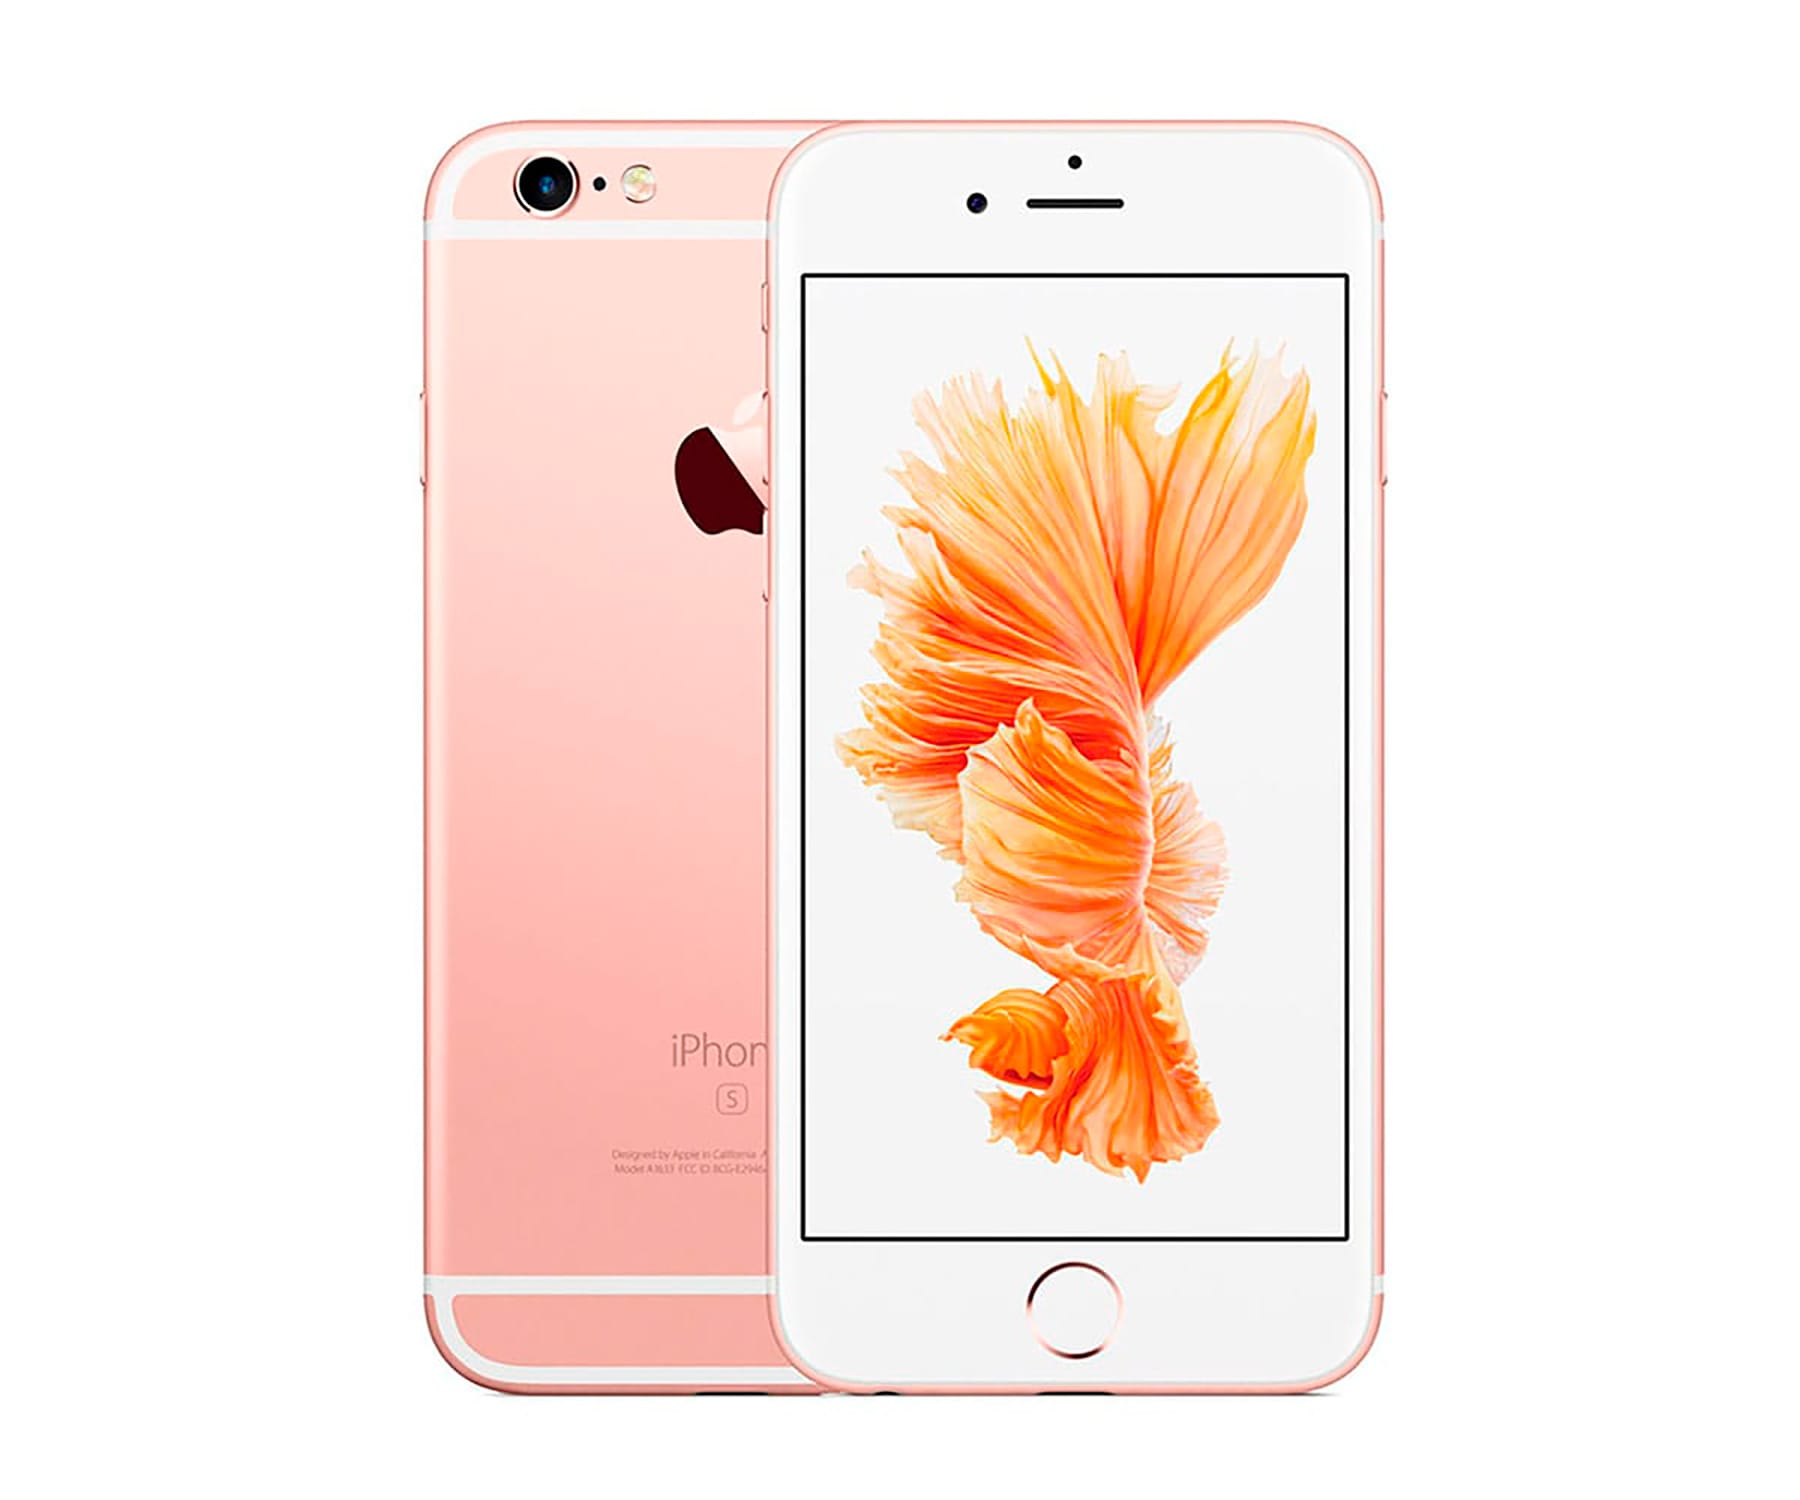 APPLE IPHONE 6S 64GB ORO ROSA REACONDICIONADO CPO MÓVIL 4G 4.7 RETINA HD/2CORE/64GB/2GB RAM/12MP/5